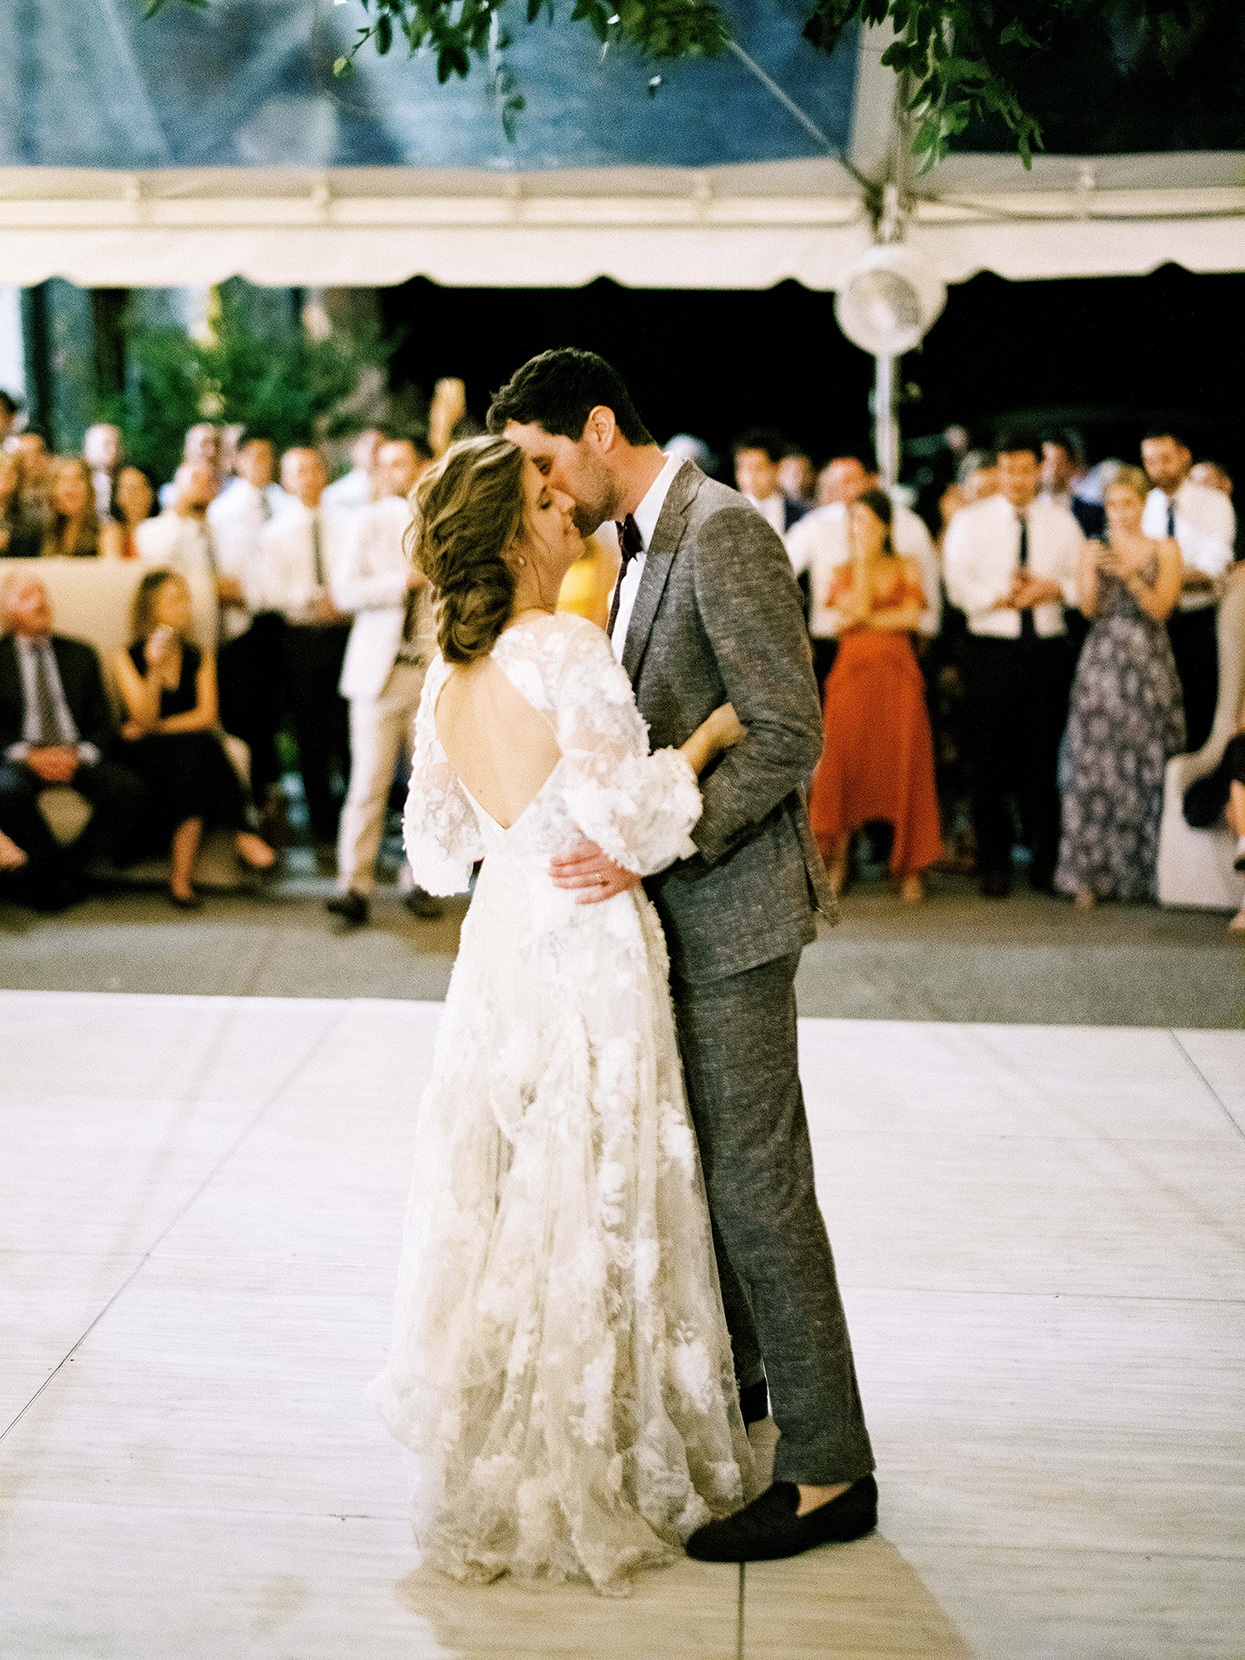 Claire and Dan's first dance as husband and wife